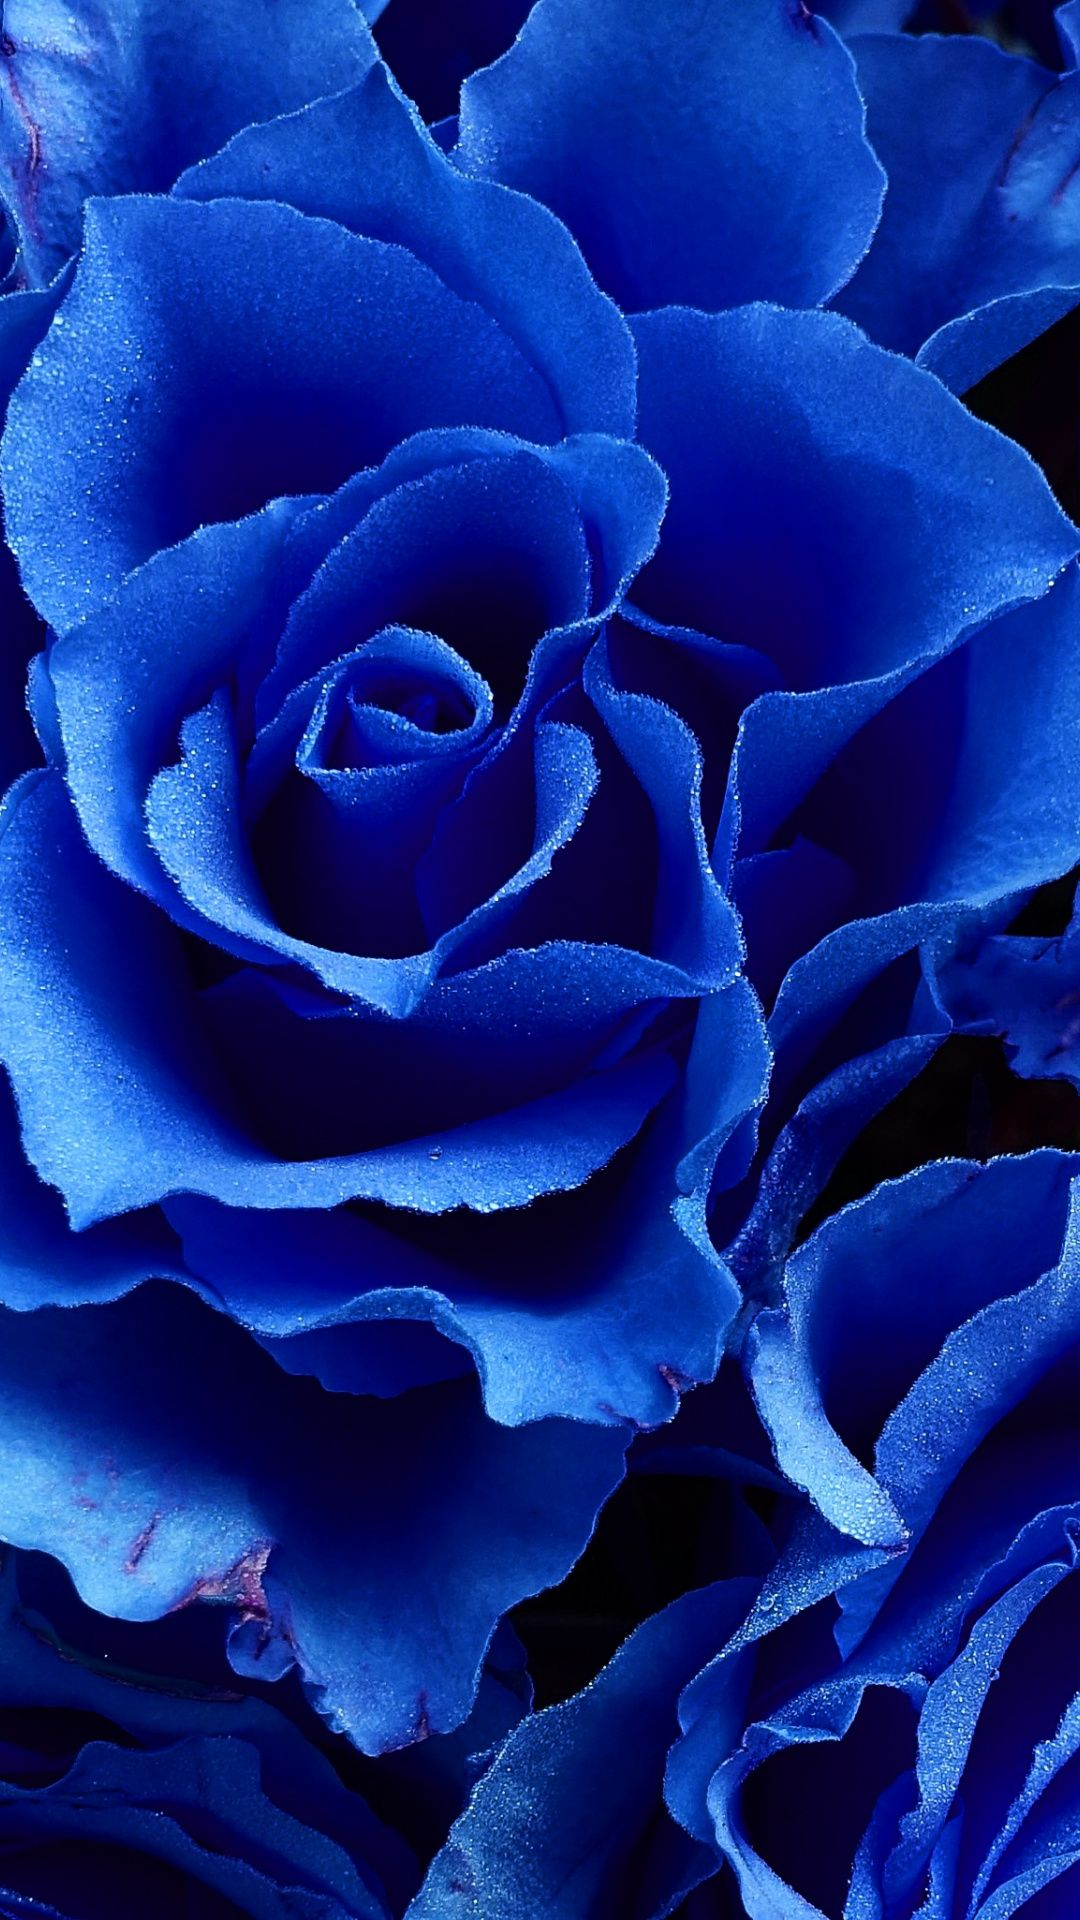 Blue Rose Flowers Close Up Wallpaper Blue Flower Wallpaper